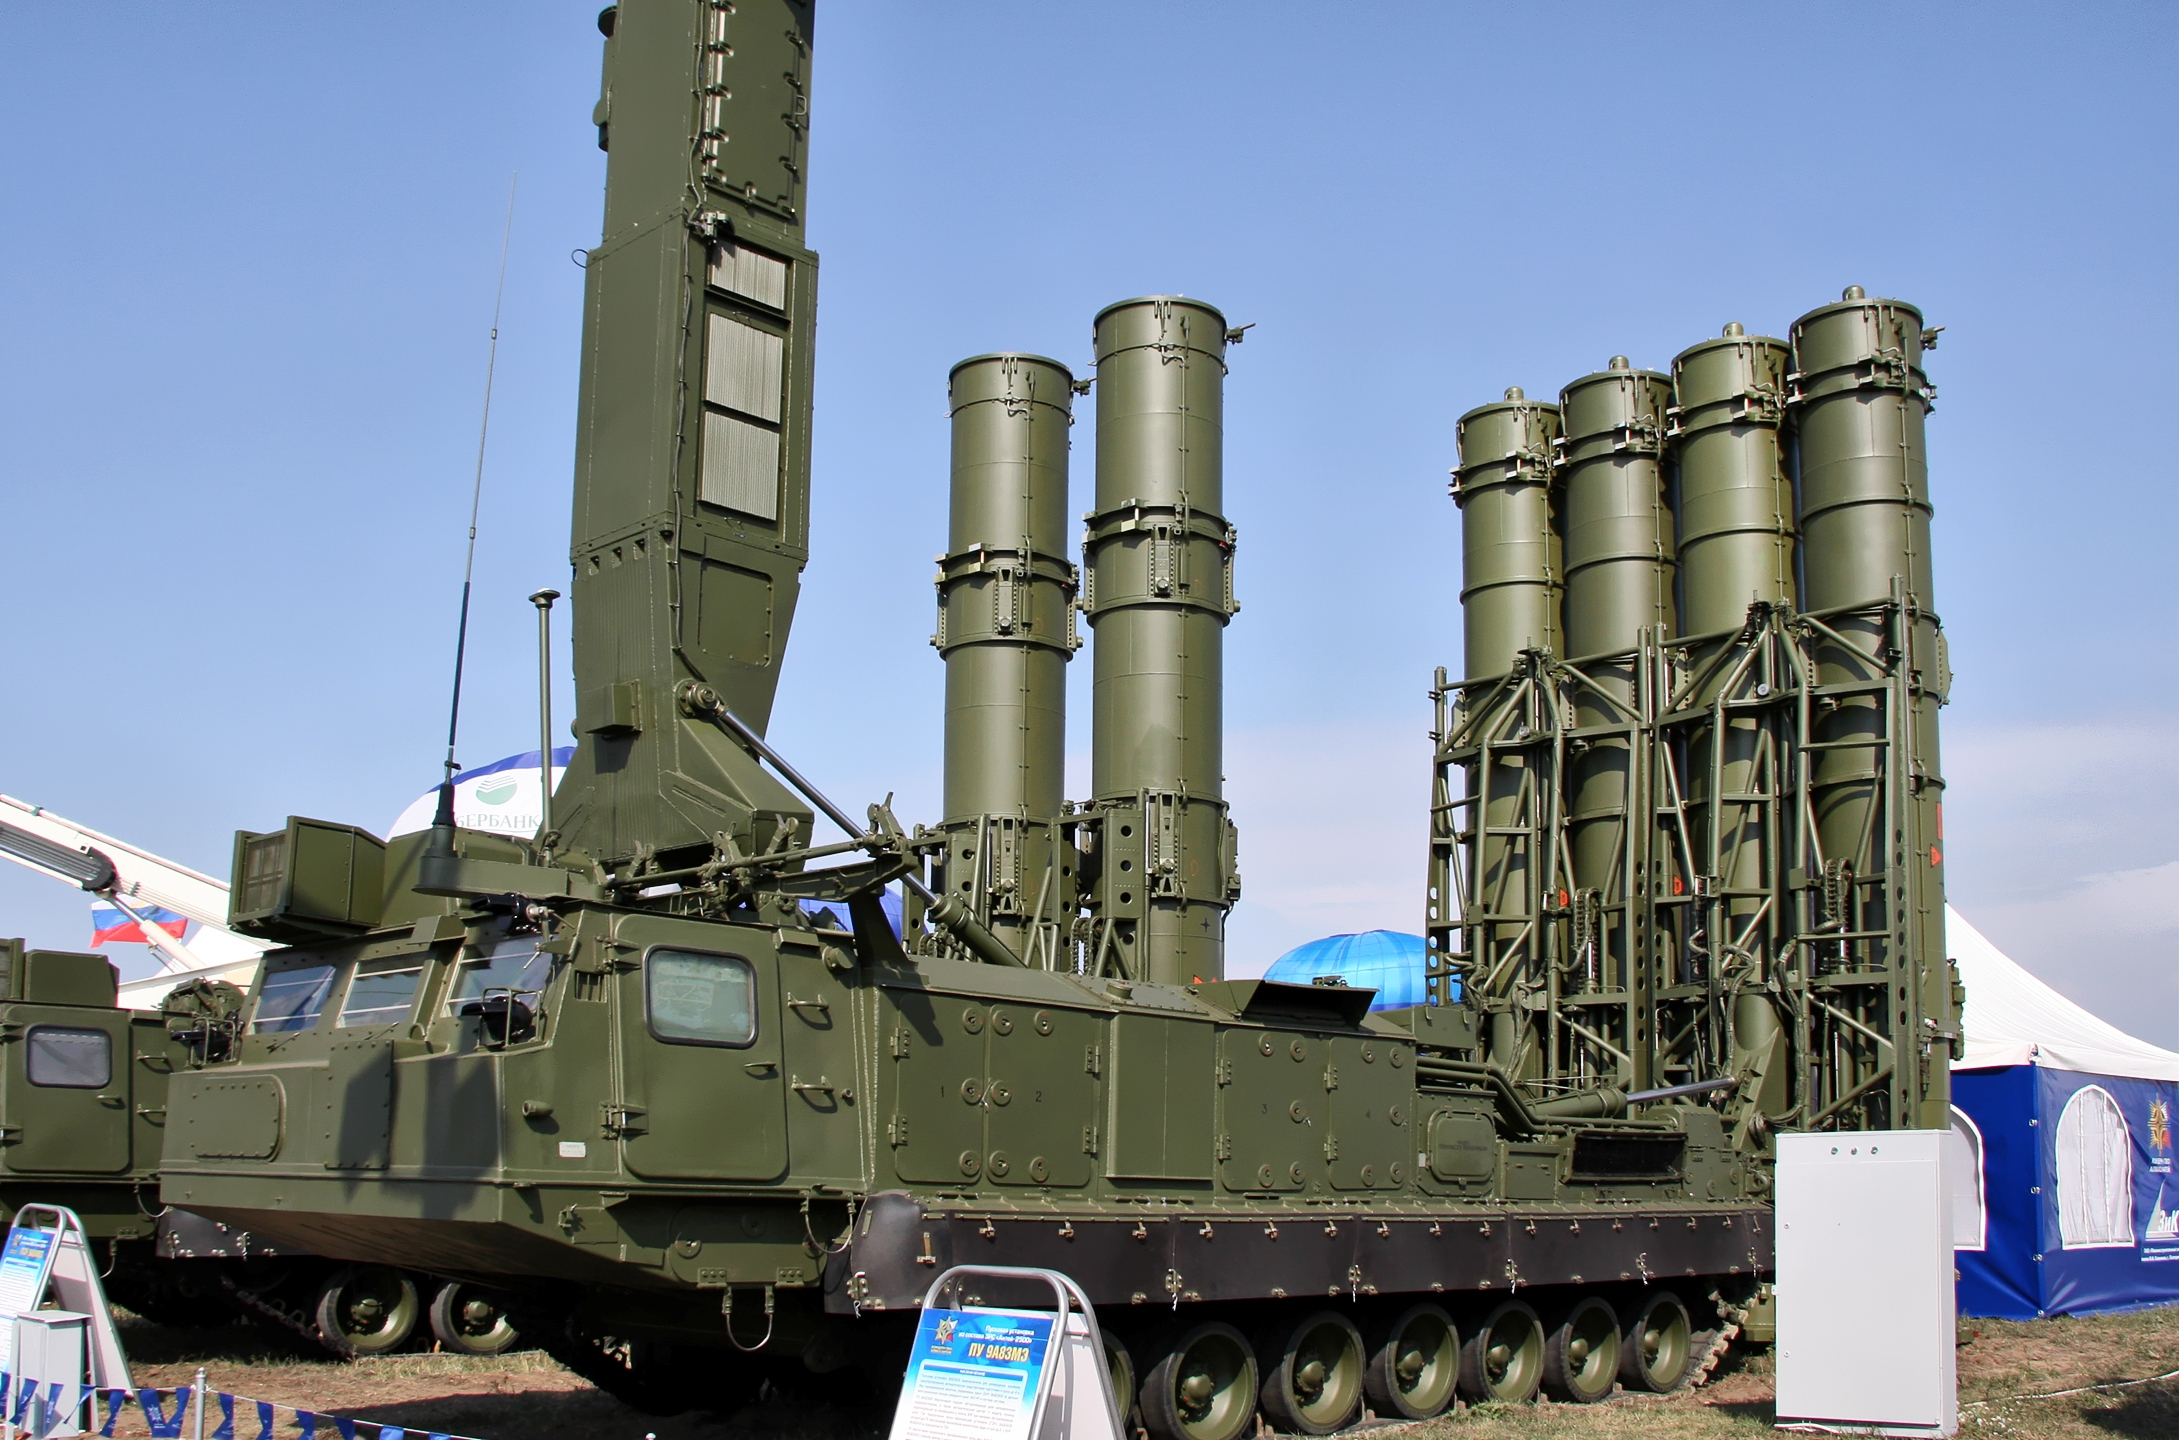 This Russian S-300VM system is designed to intercept missiles, including ballistic missiles. Clearly visible are the elevated missile tubs in the rear of the vehicle.